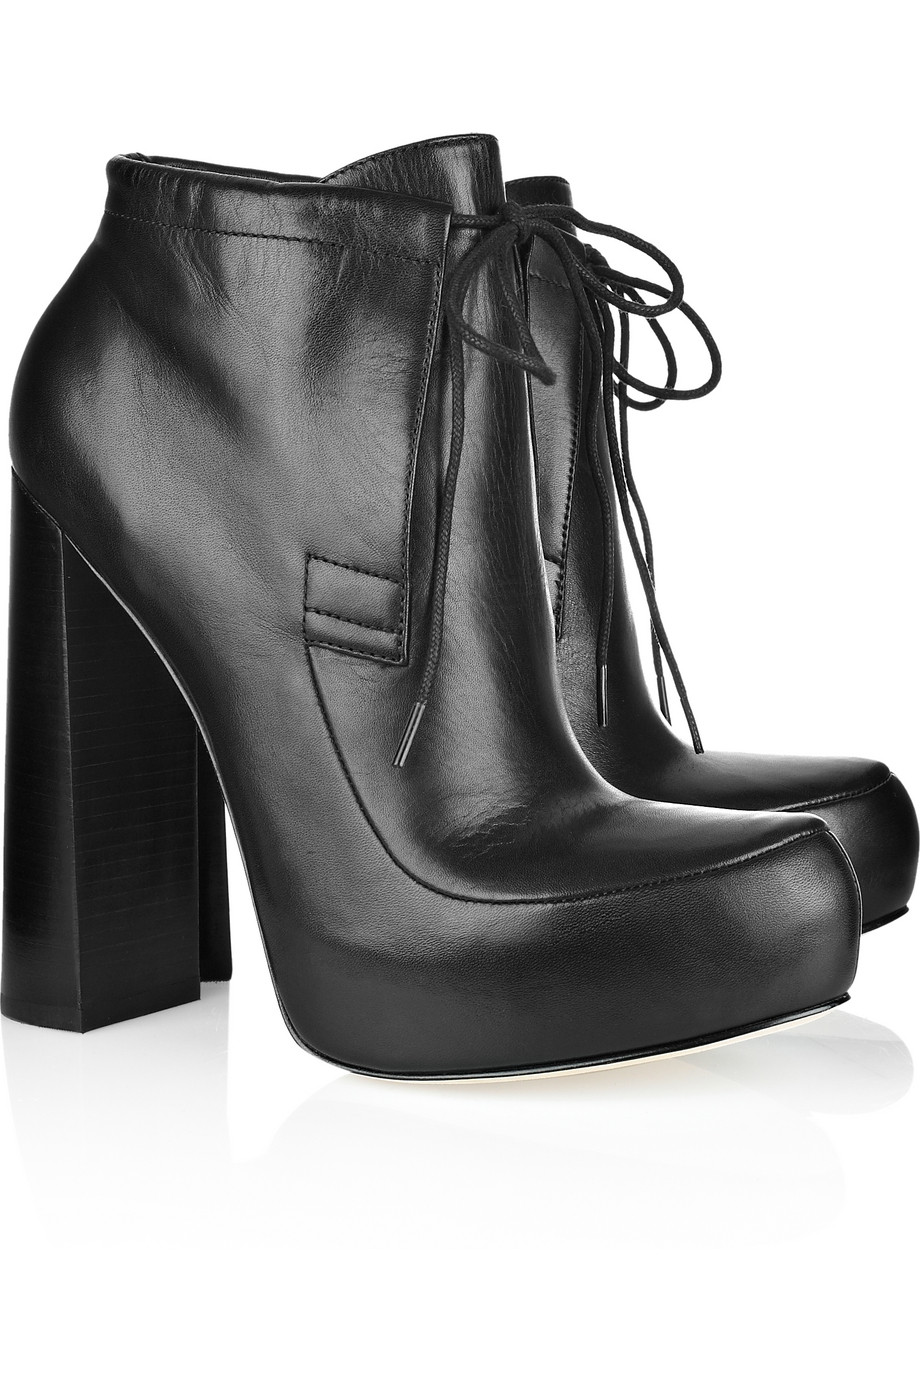 1f8754dd41d8 Lyst - Alexander Wang Constance Leather Platform Ankle Boots in Black